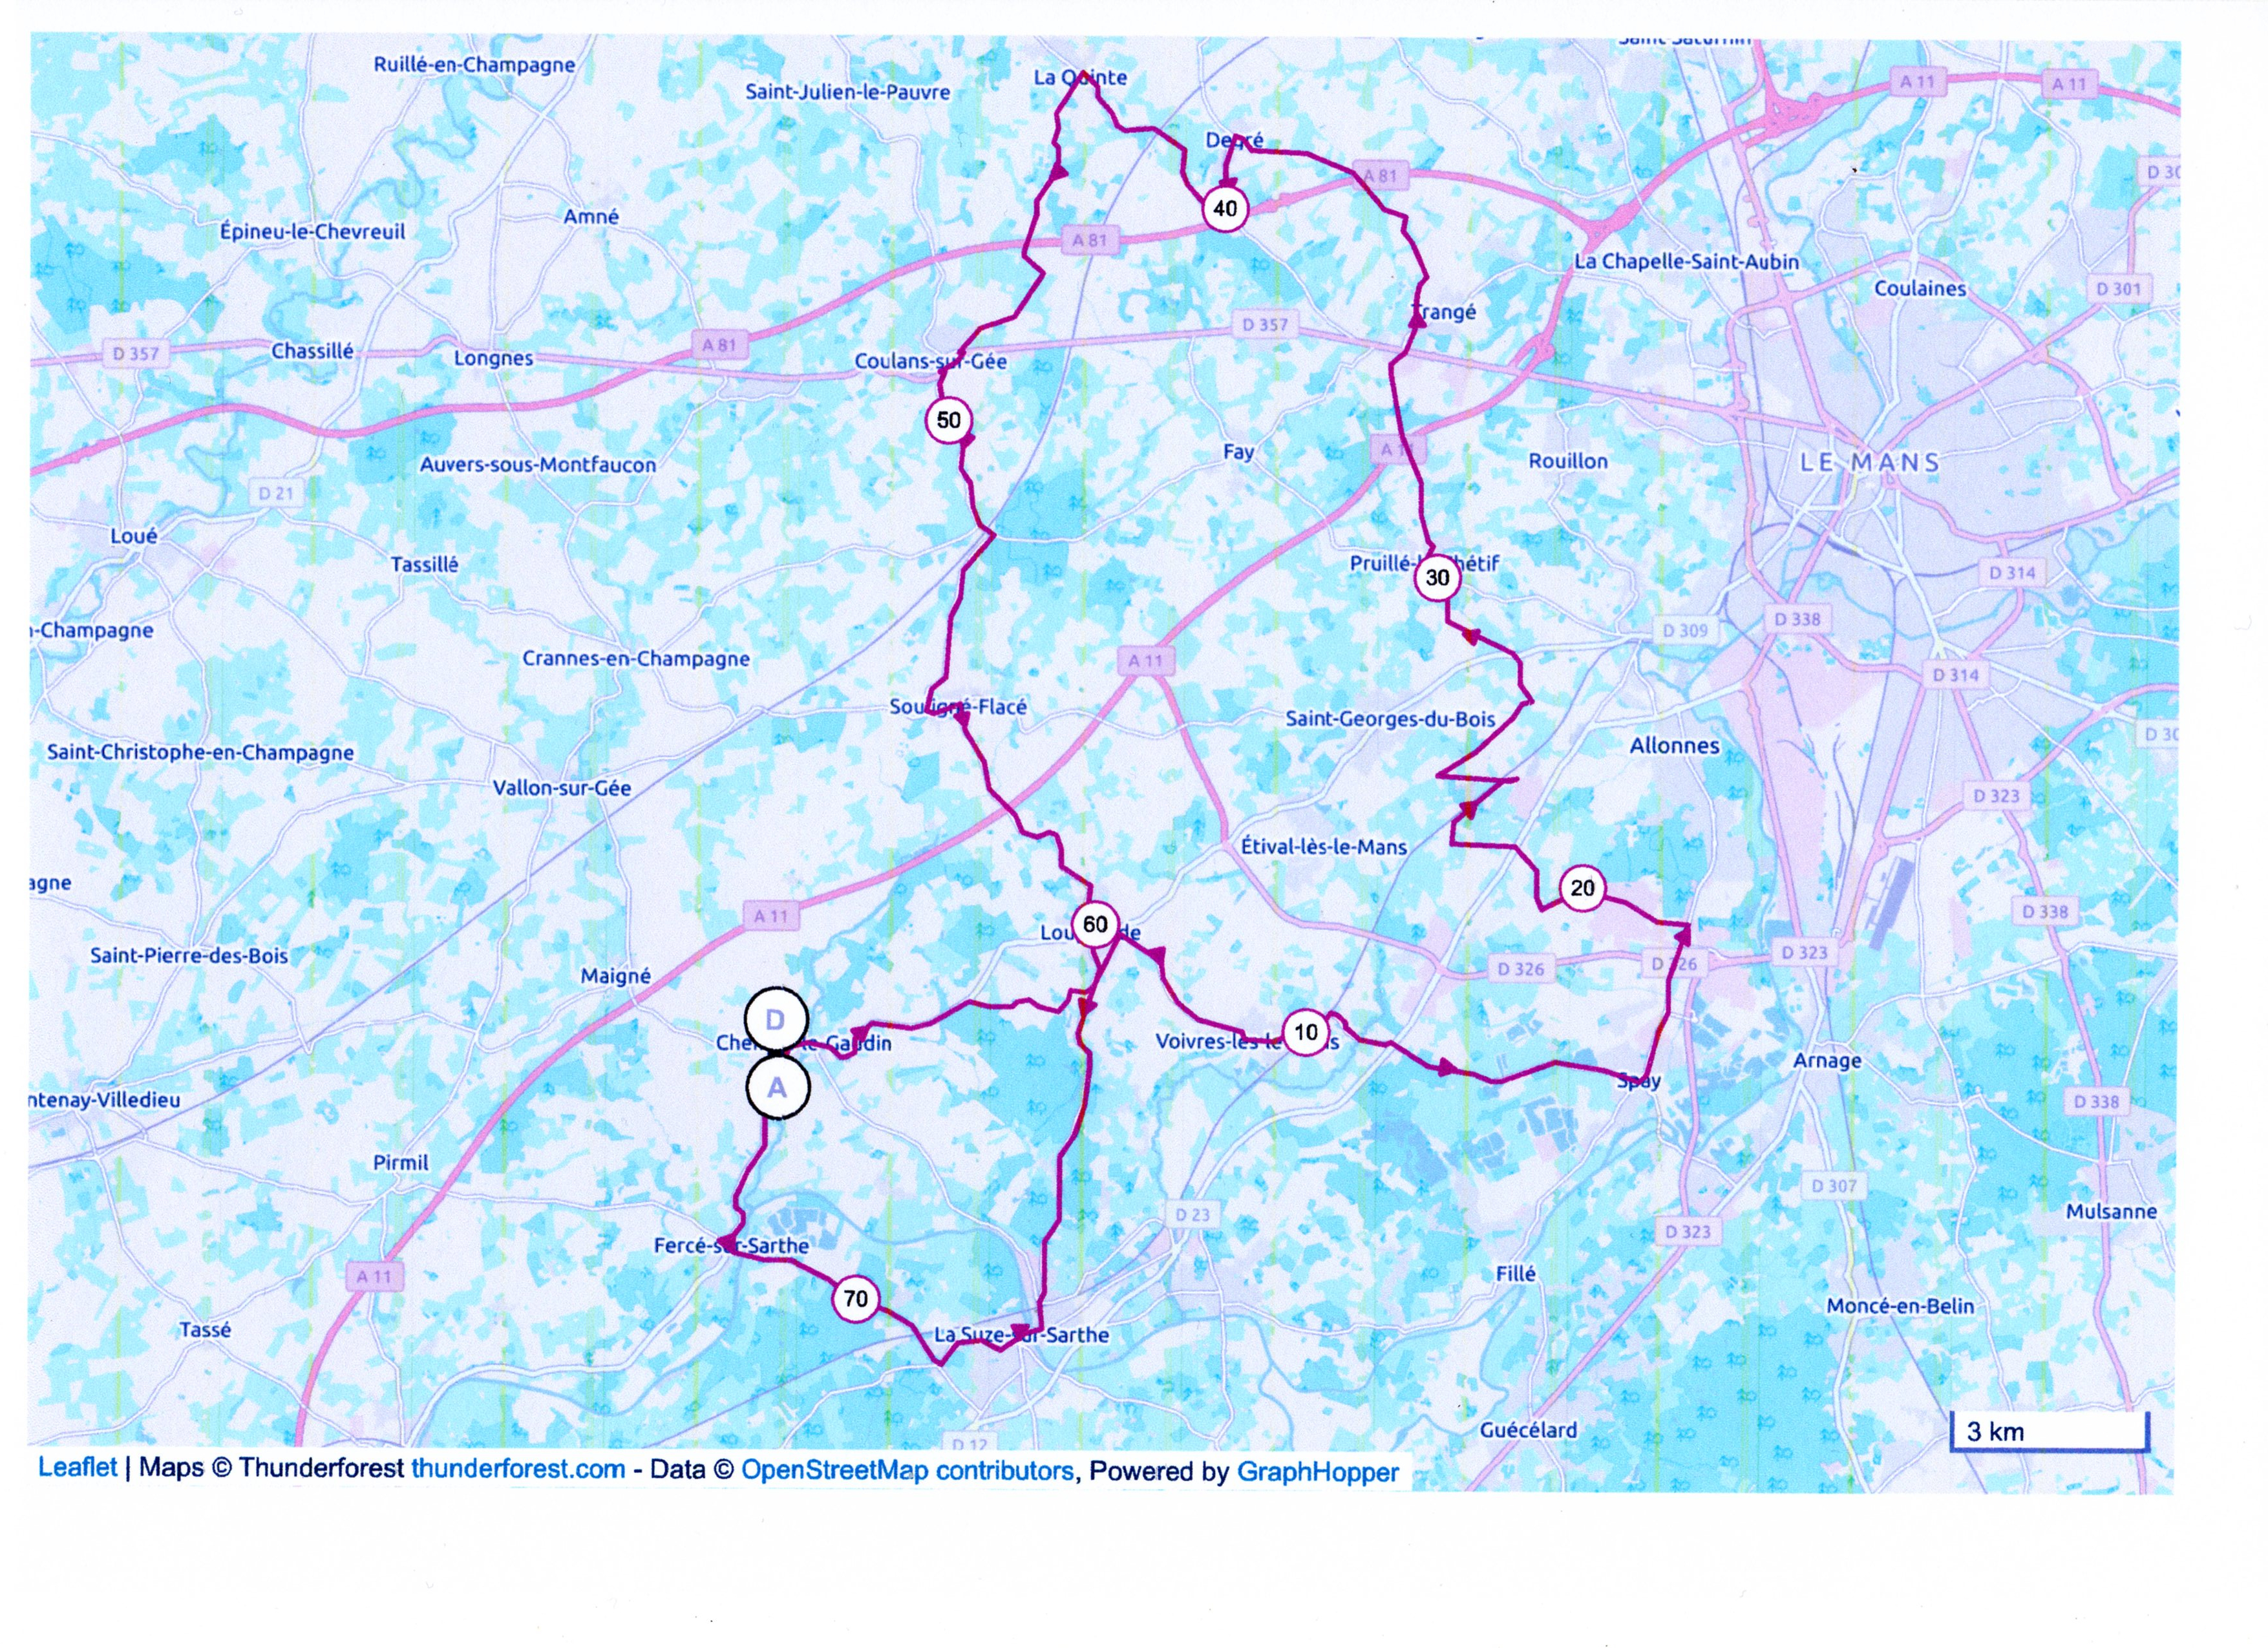 Parcours Cyclos 25-04-2021 (1)